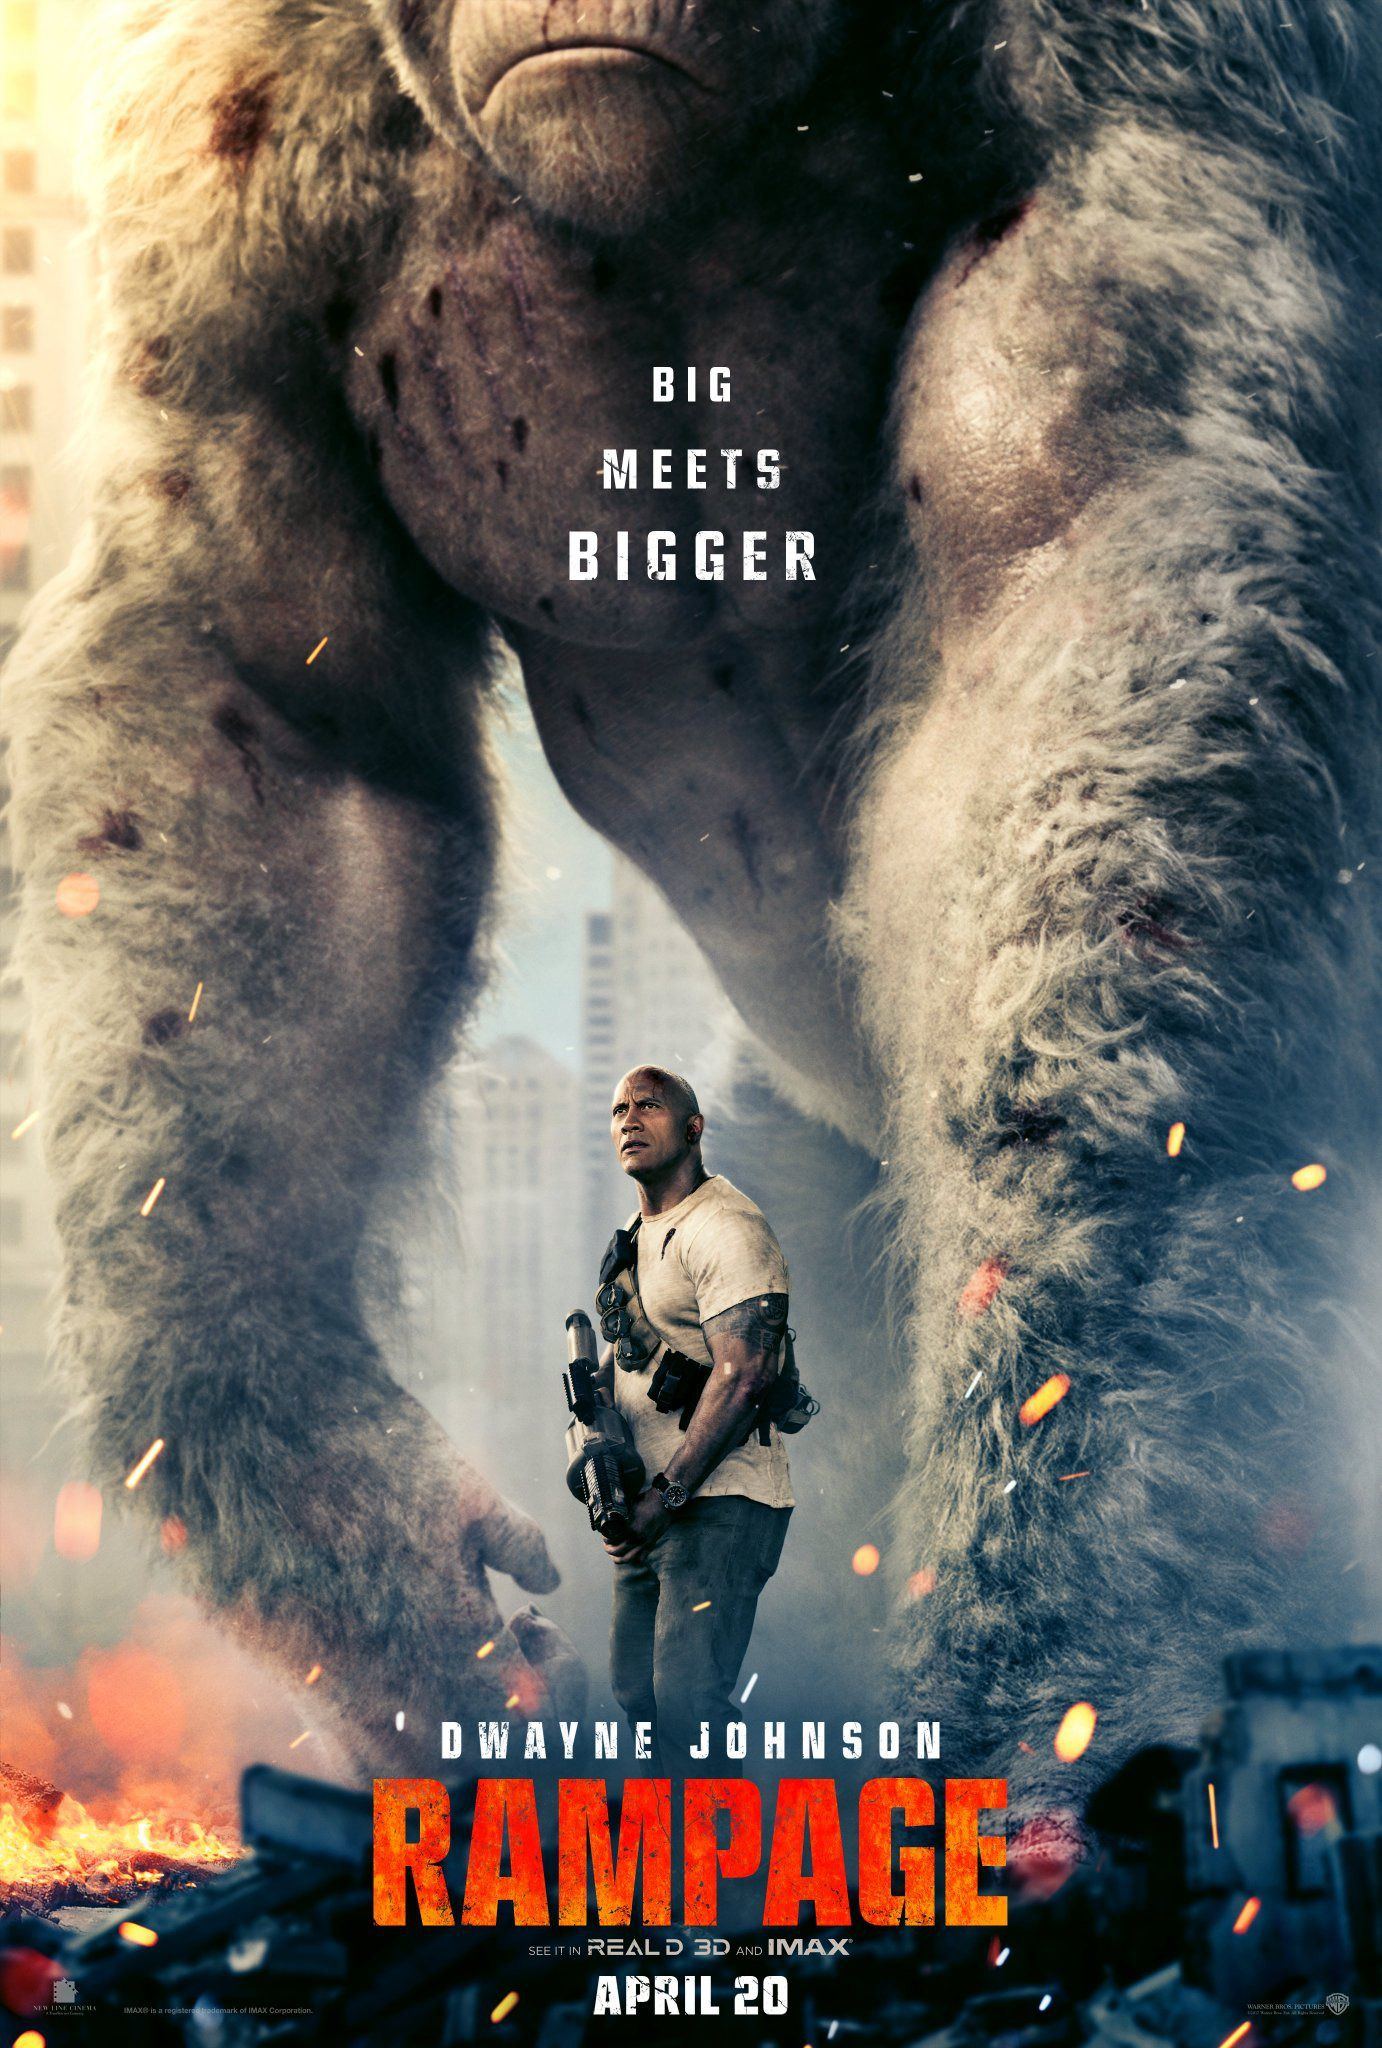 See Bande Annonce Vf : bande, annonce, Rampage, Bande-annonce, L'adaptation, Vidéo, Films, Complets,, Streaming, Gratuit,